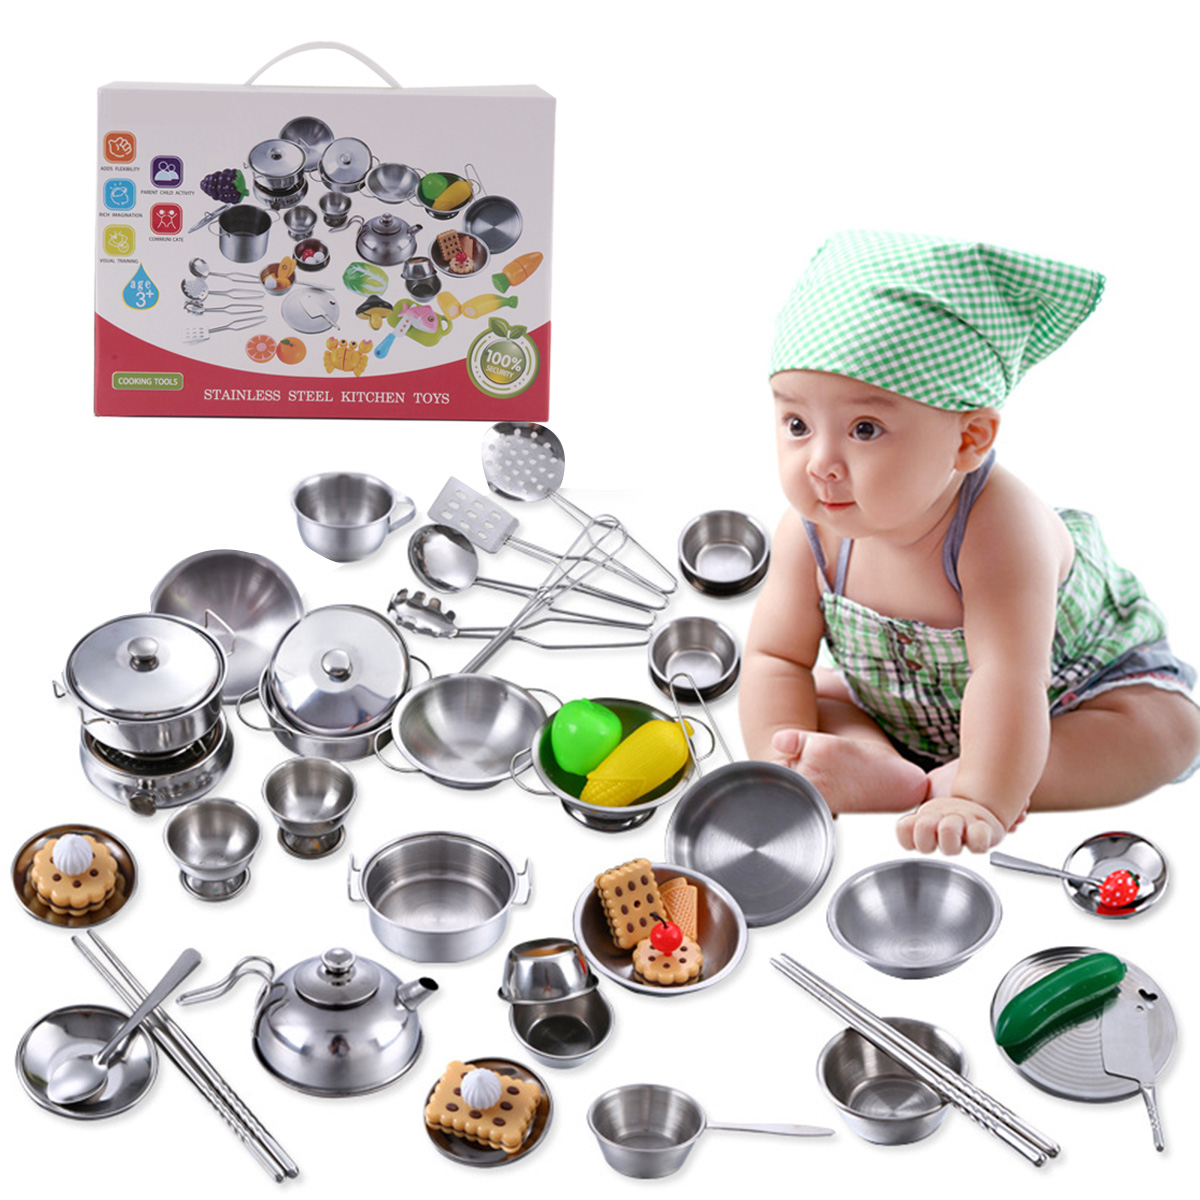 Baby Child Kitchen Cooking Toys Set Girls Children Kids 16pcs Kid Play House Educational Toy Kitchen Utensils Cooker Xmas Gift